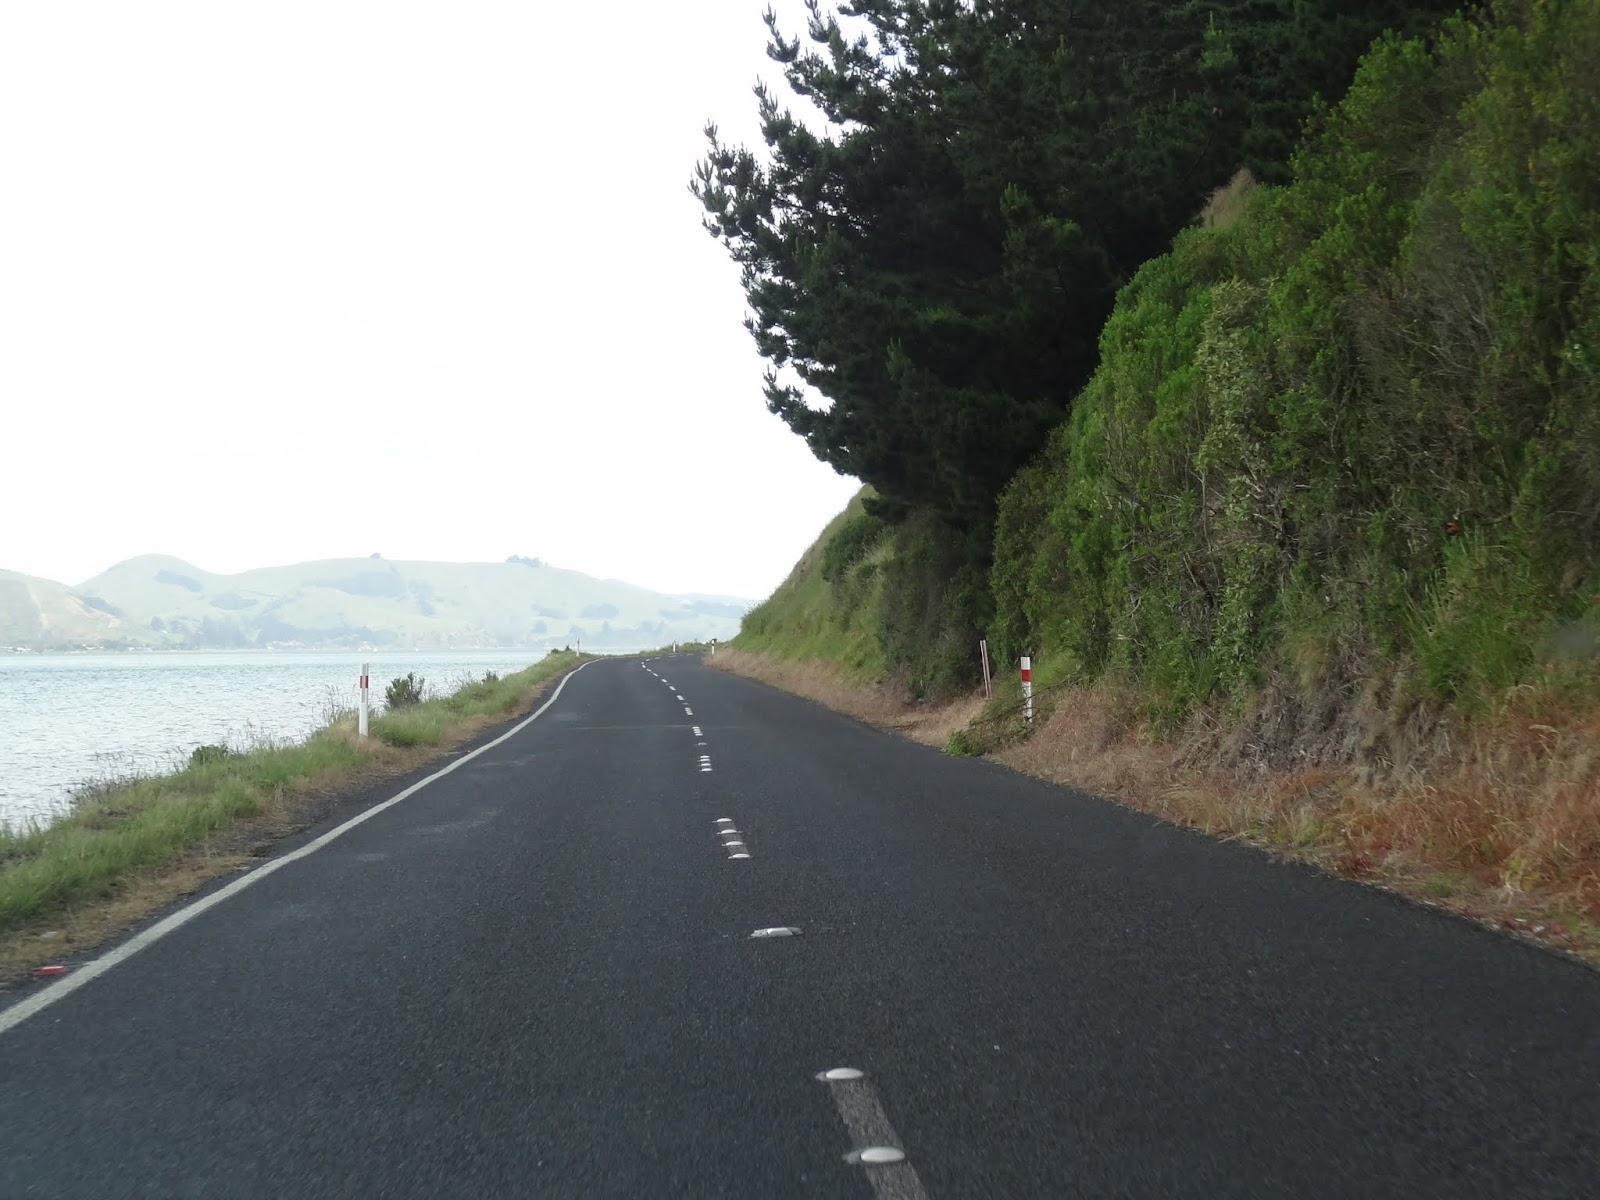 The road beyond the port